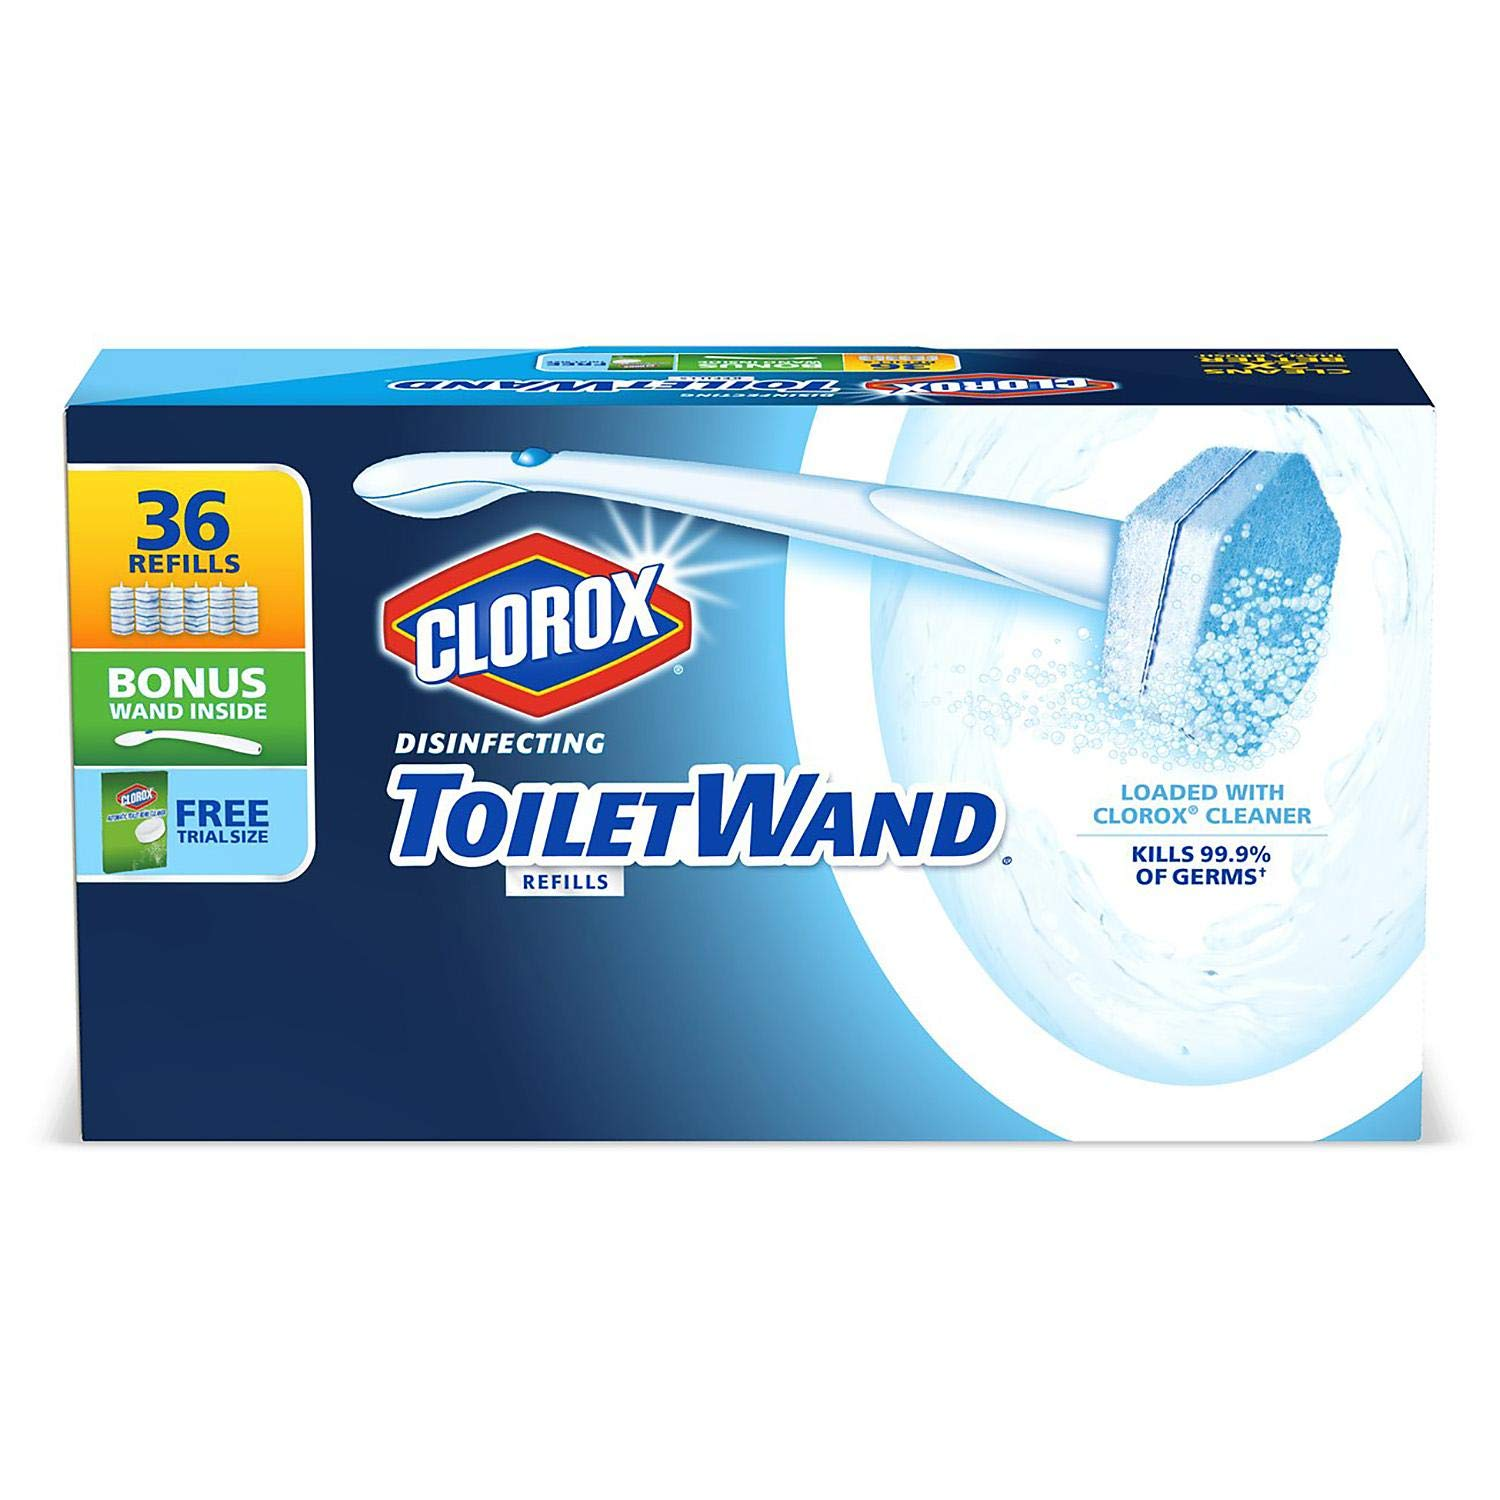 ToiletWand Disinfecting Refills, Disposable Wand Heads - 30 Count (2 Pack) by Clorox